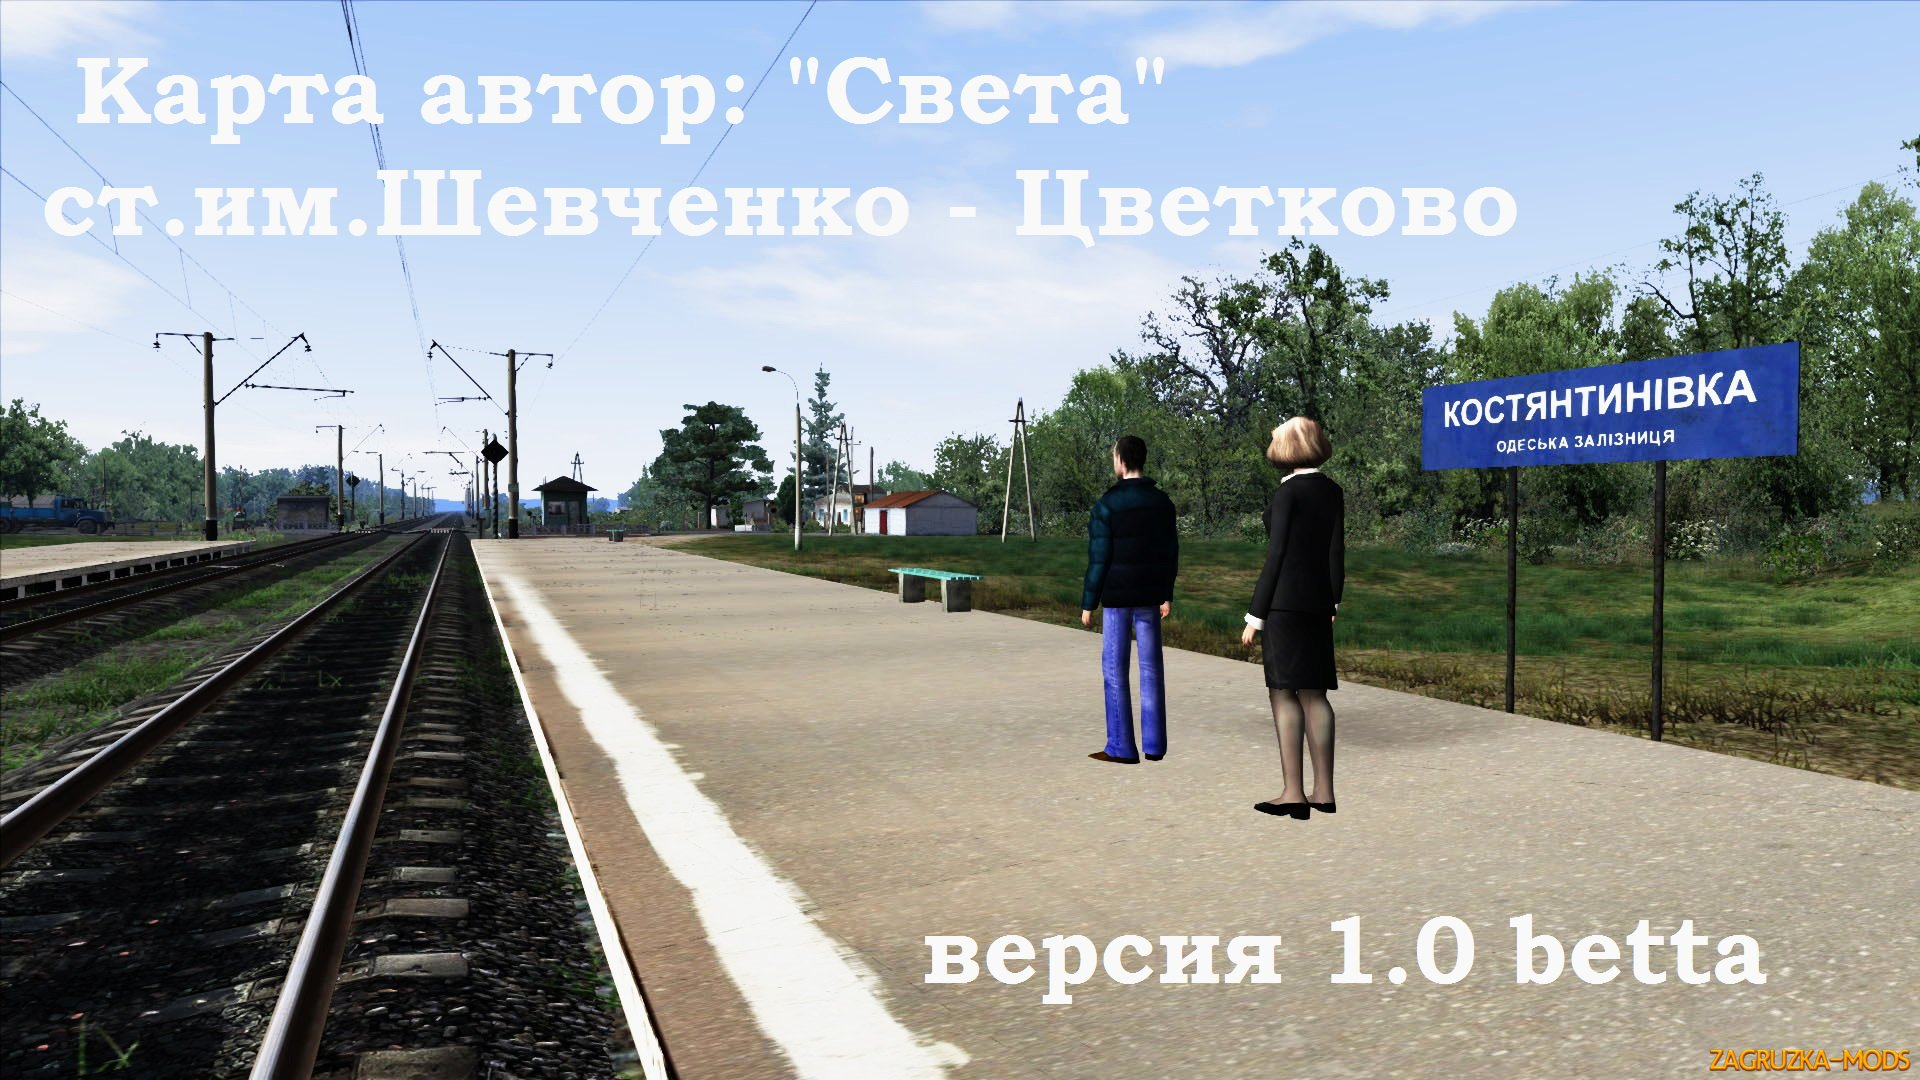 Route Shevchenko - Tsvetkovo v1.0 (Beta) for TS 2015 / TS 2016